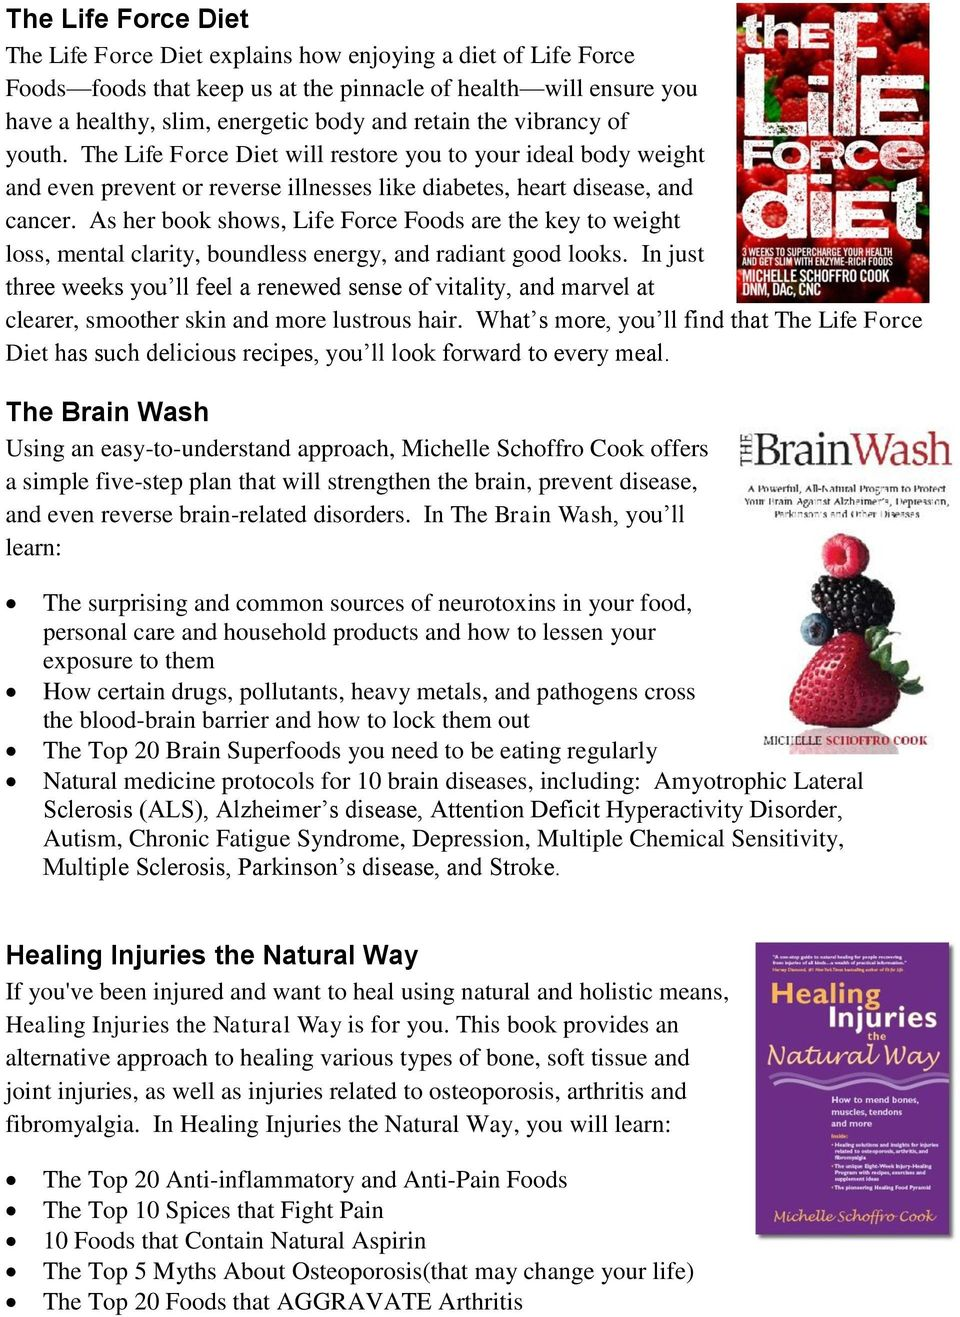 As her book shows, Life Force Foods are the key to weight loss, mental clarity, boundless energy, and radiant good looks.